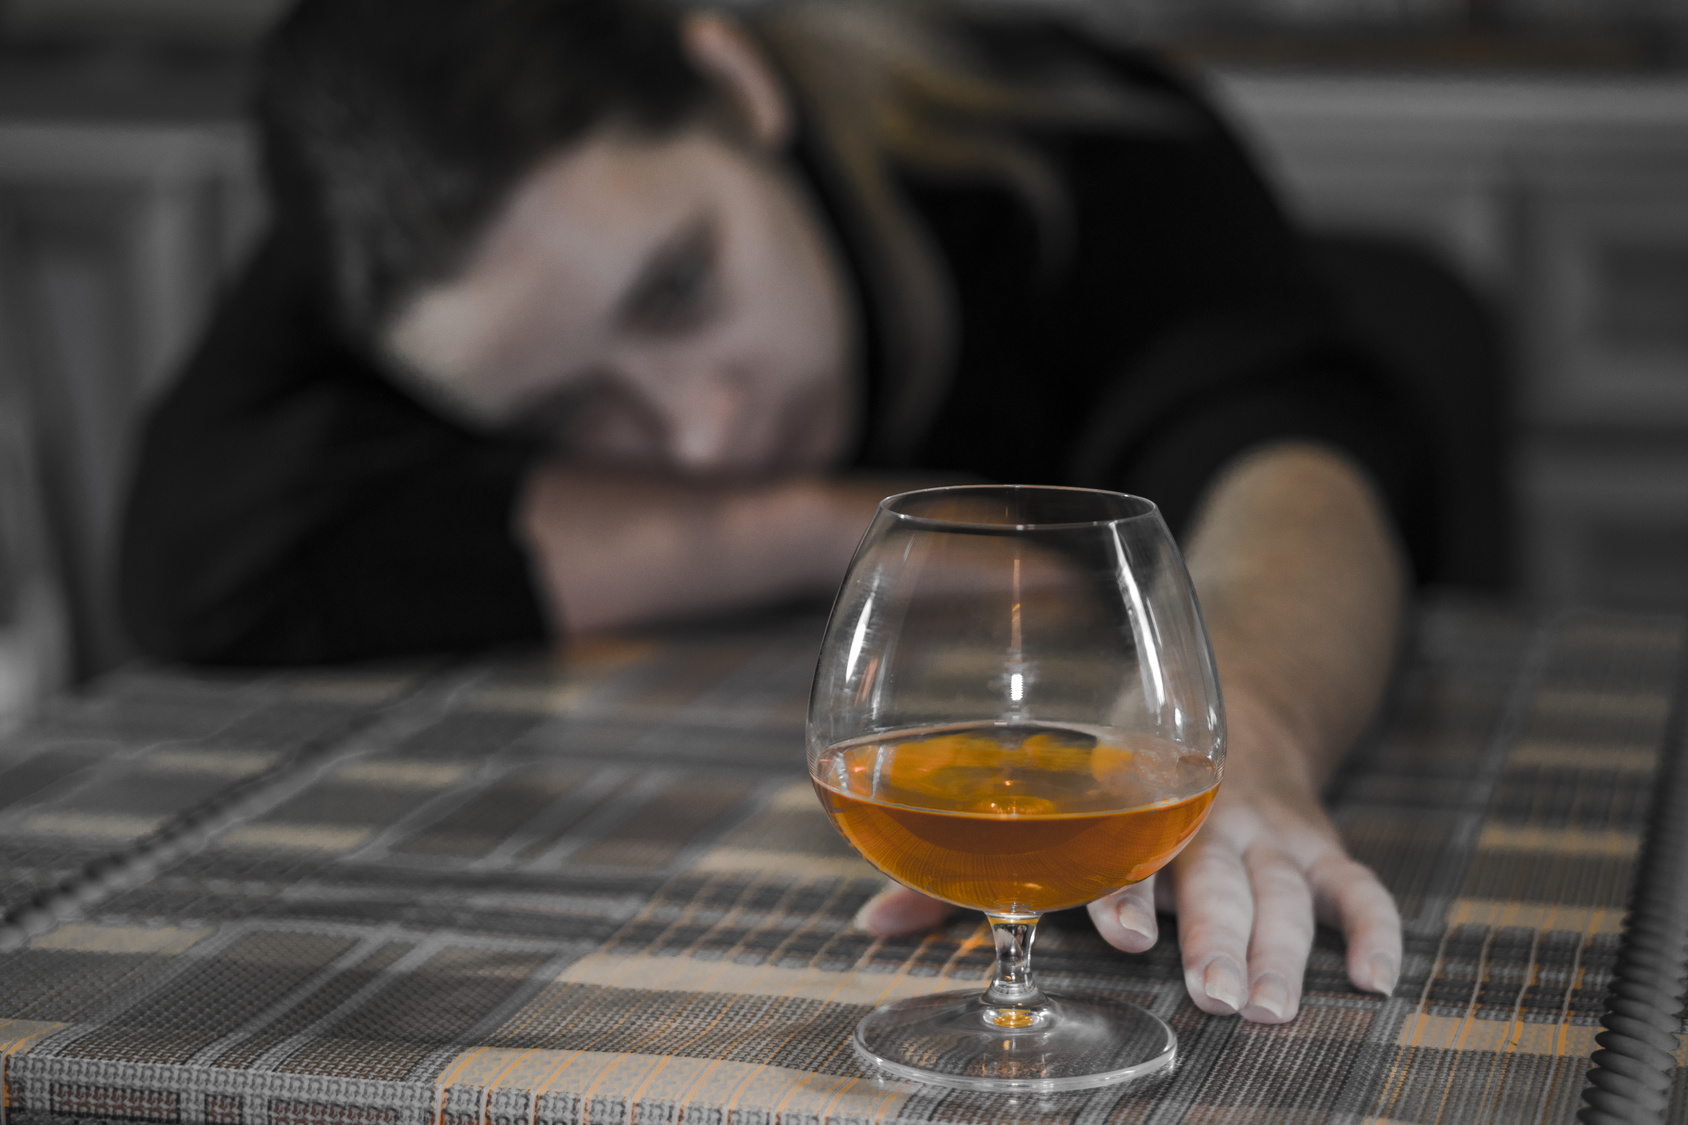 Female alcoholism. Young woman relaxes at home with a glass of drink. The hand reaches for a glass of cognac.